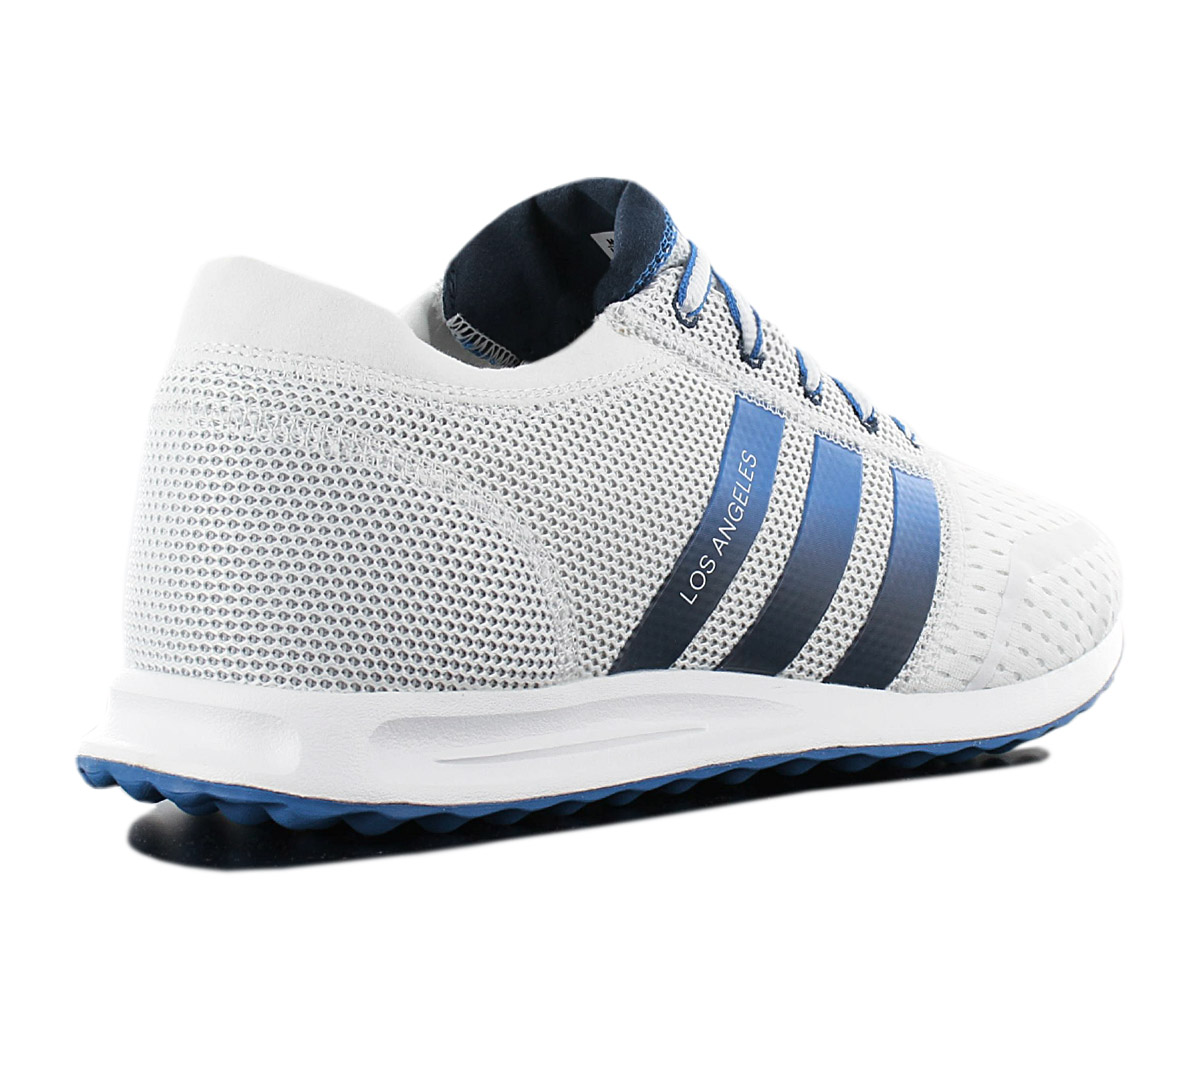 Details about Adidas Los Angeles Men's Sneaker S79032 White Shoes New